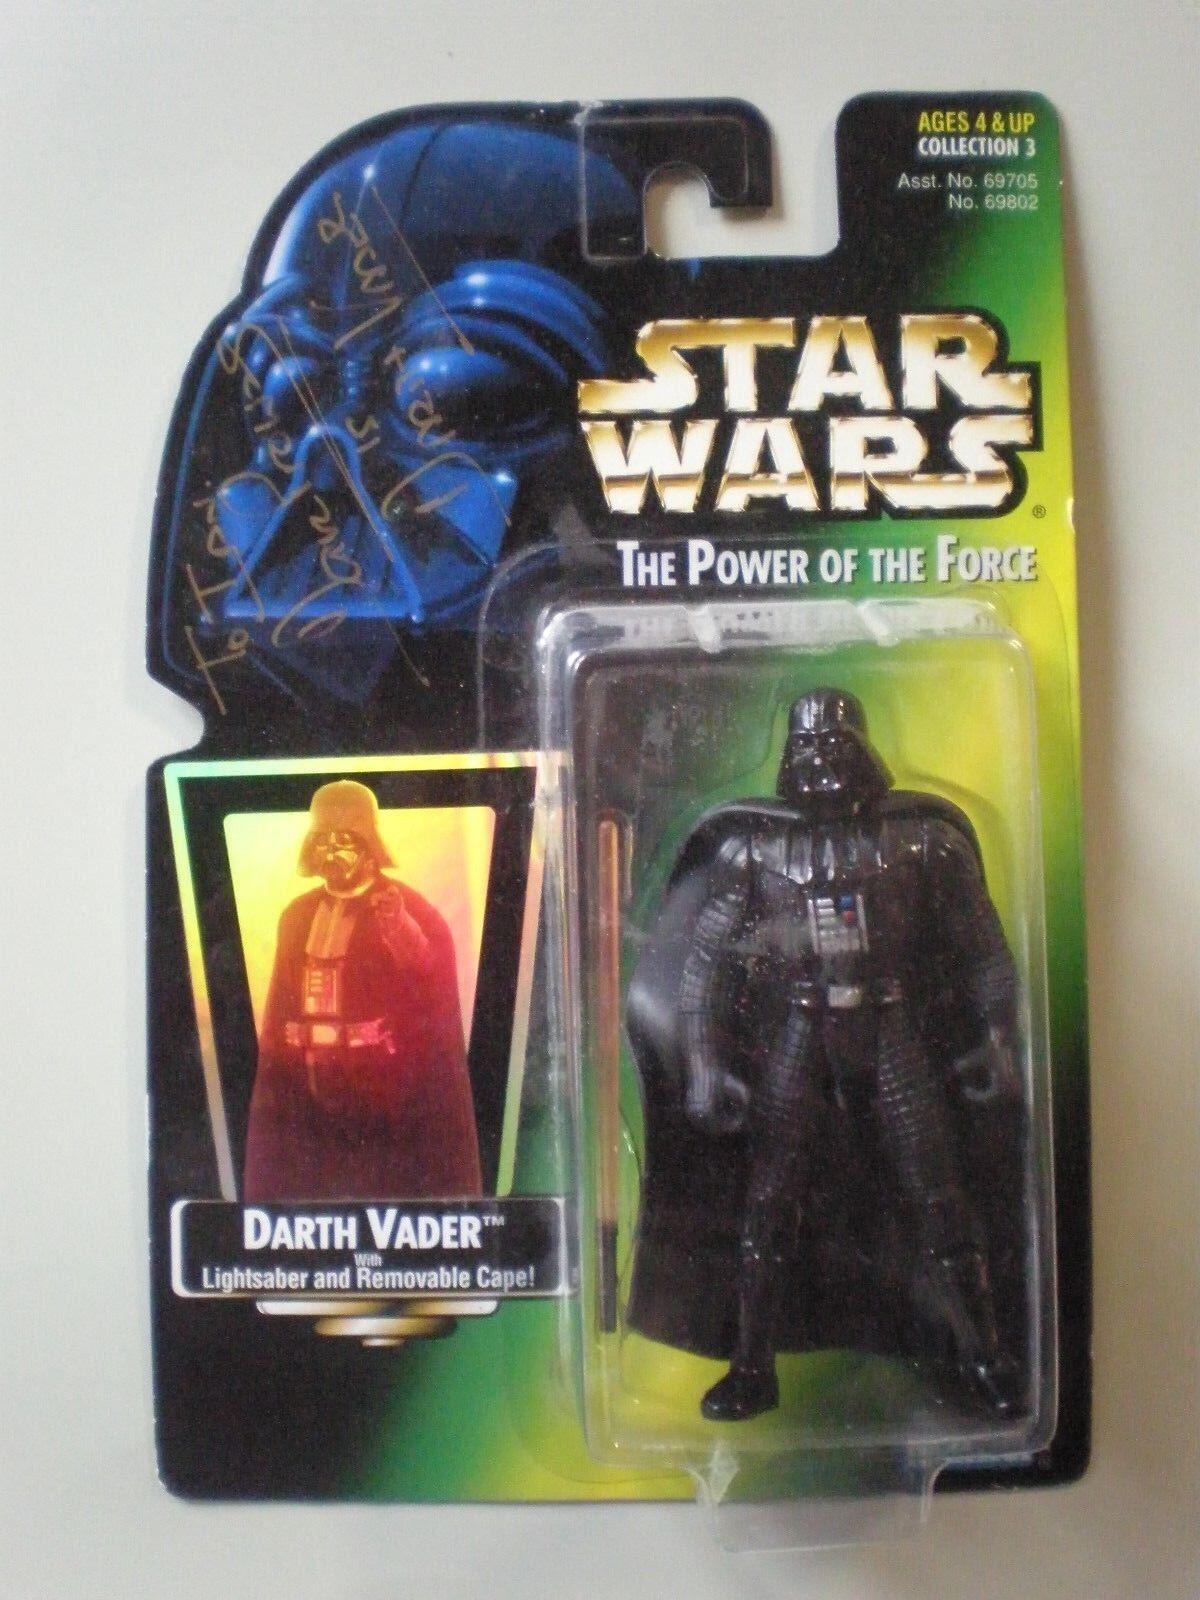 1997 Vintage Star Wars Darth Vader Figure Autographed by David Prowse